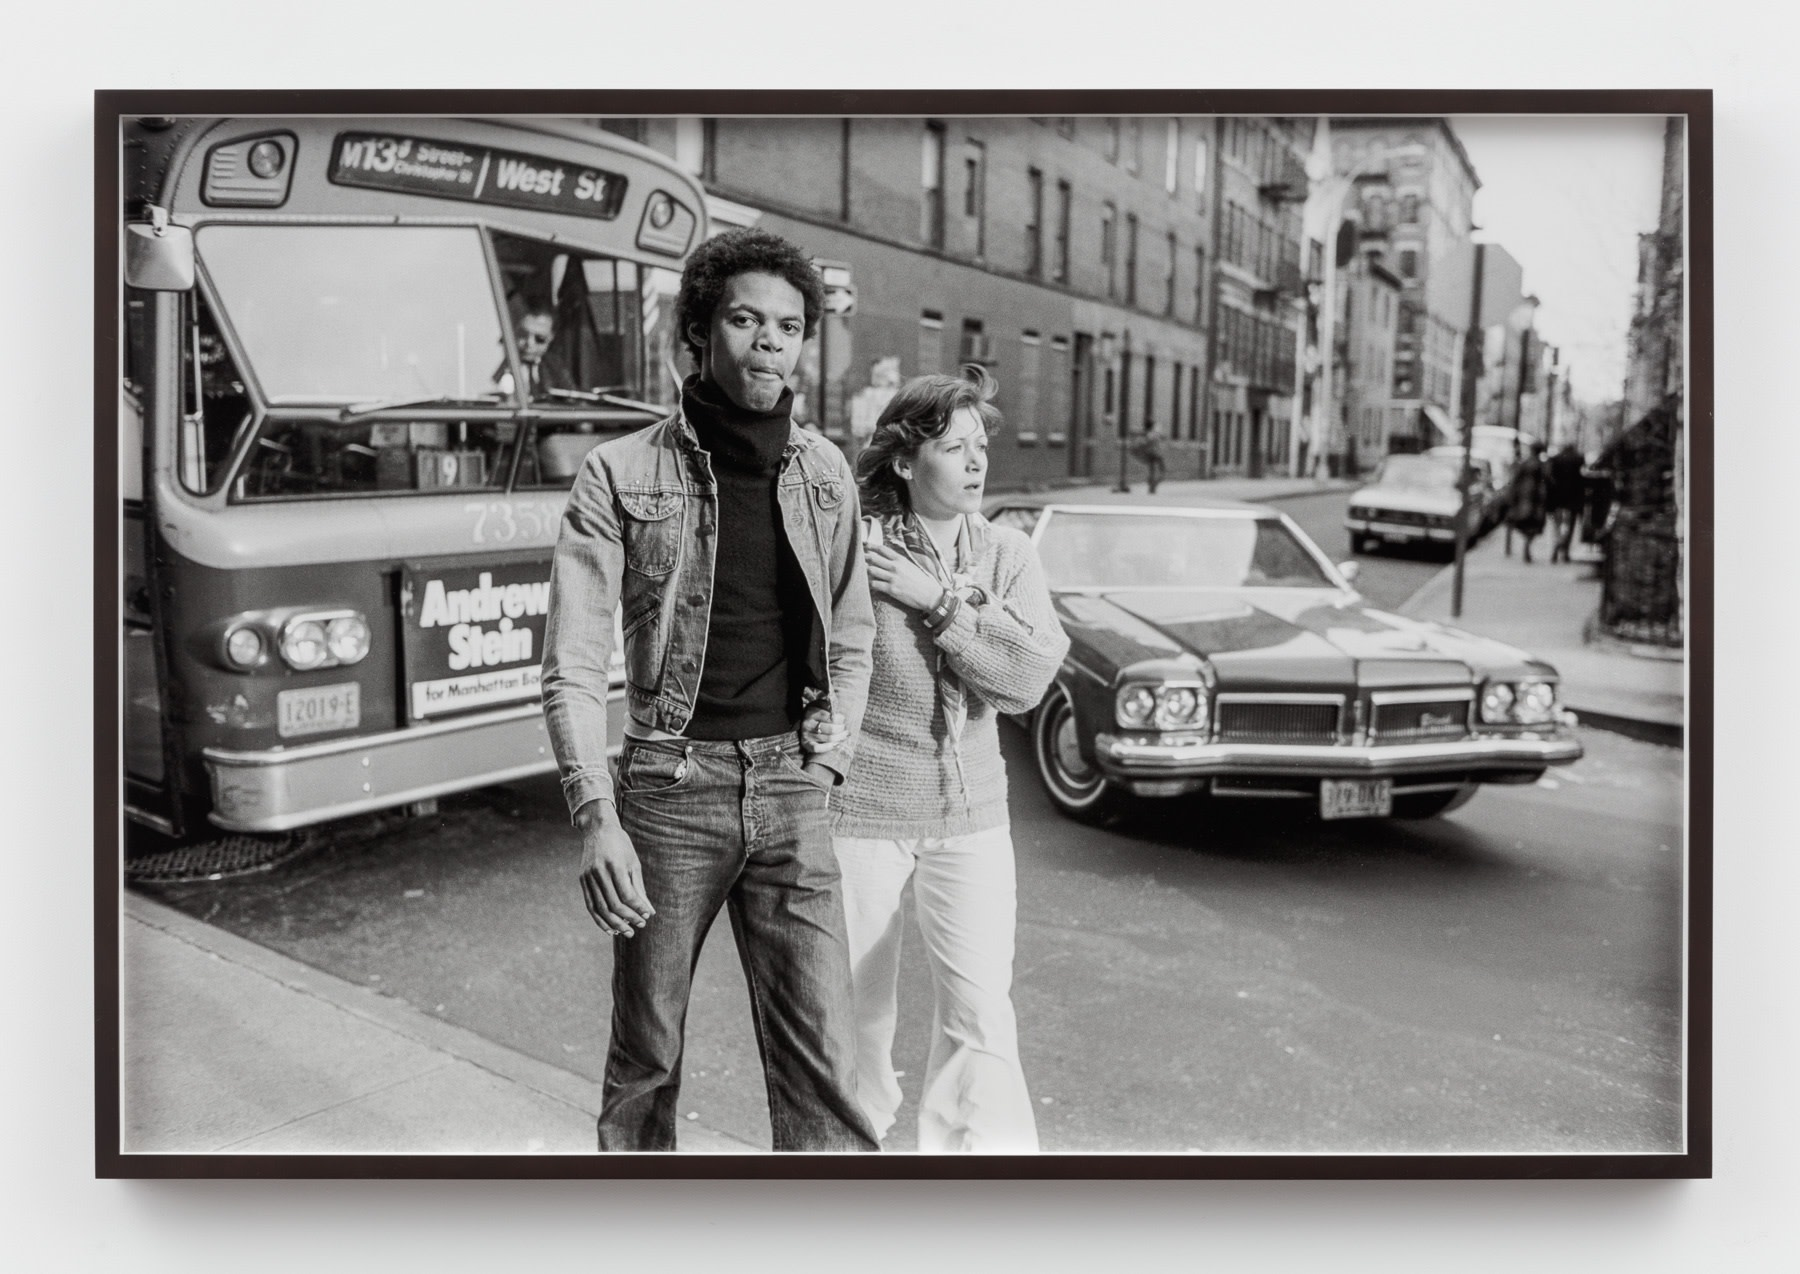 Sunil Gupta, Untitled #42 from the series Christopher Street, 1976/2019, Silver gelatin print, 60.9 x 91.7 cm, 24 x 36 1/8 in, Framed: 63 x 93.7 cm, 24 7/8 x 36 7/8 in, Edition of 5 plus 1 AP